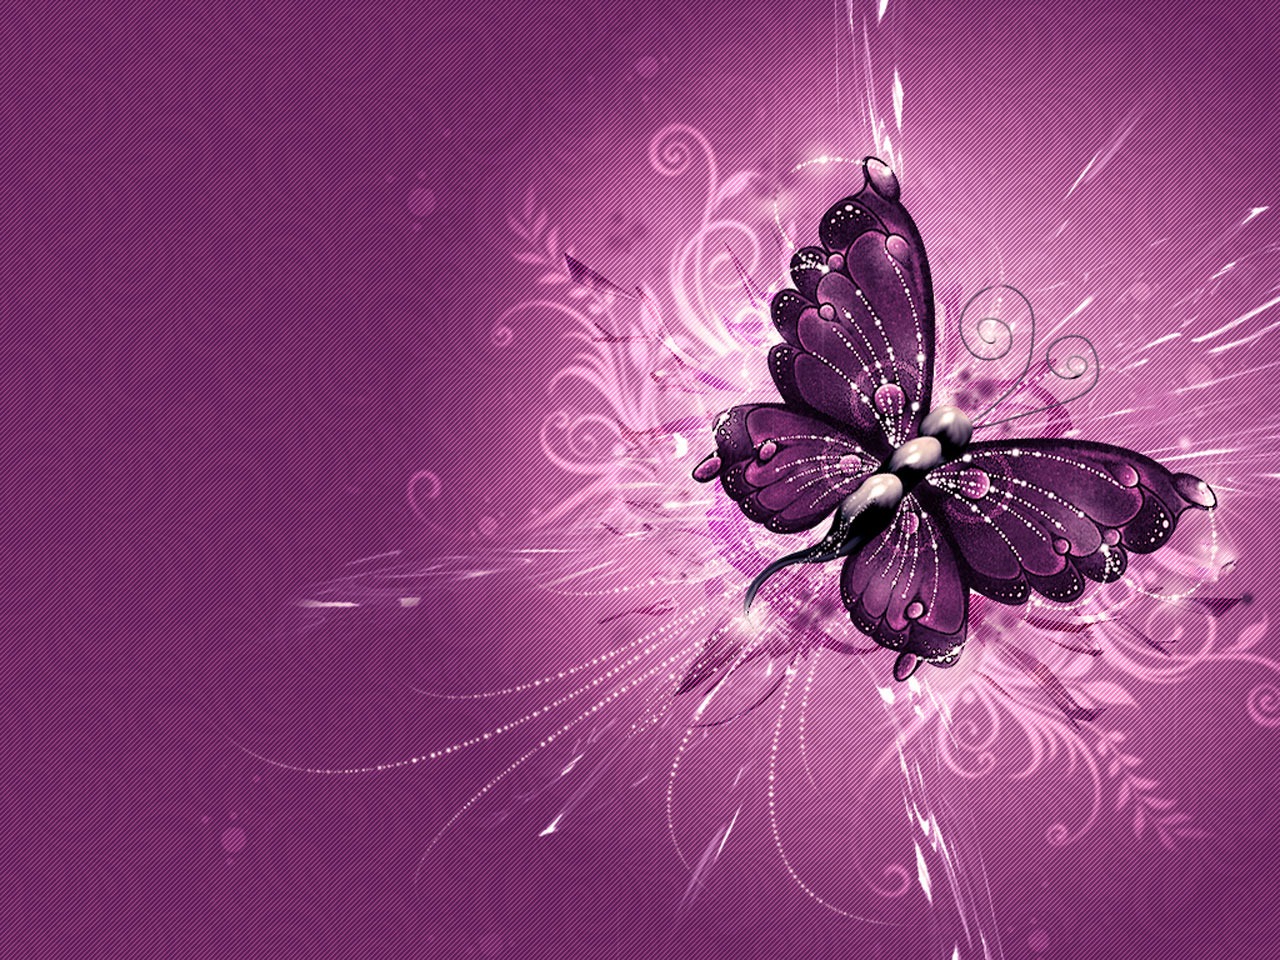 butterfly wallpaper 3d wallpaper nature wallpaper